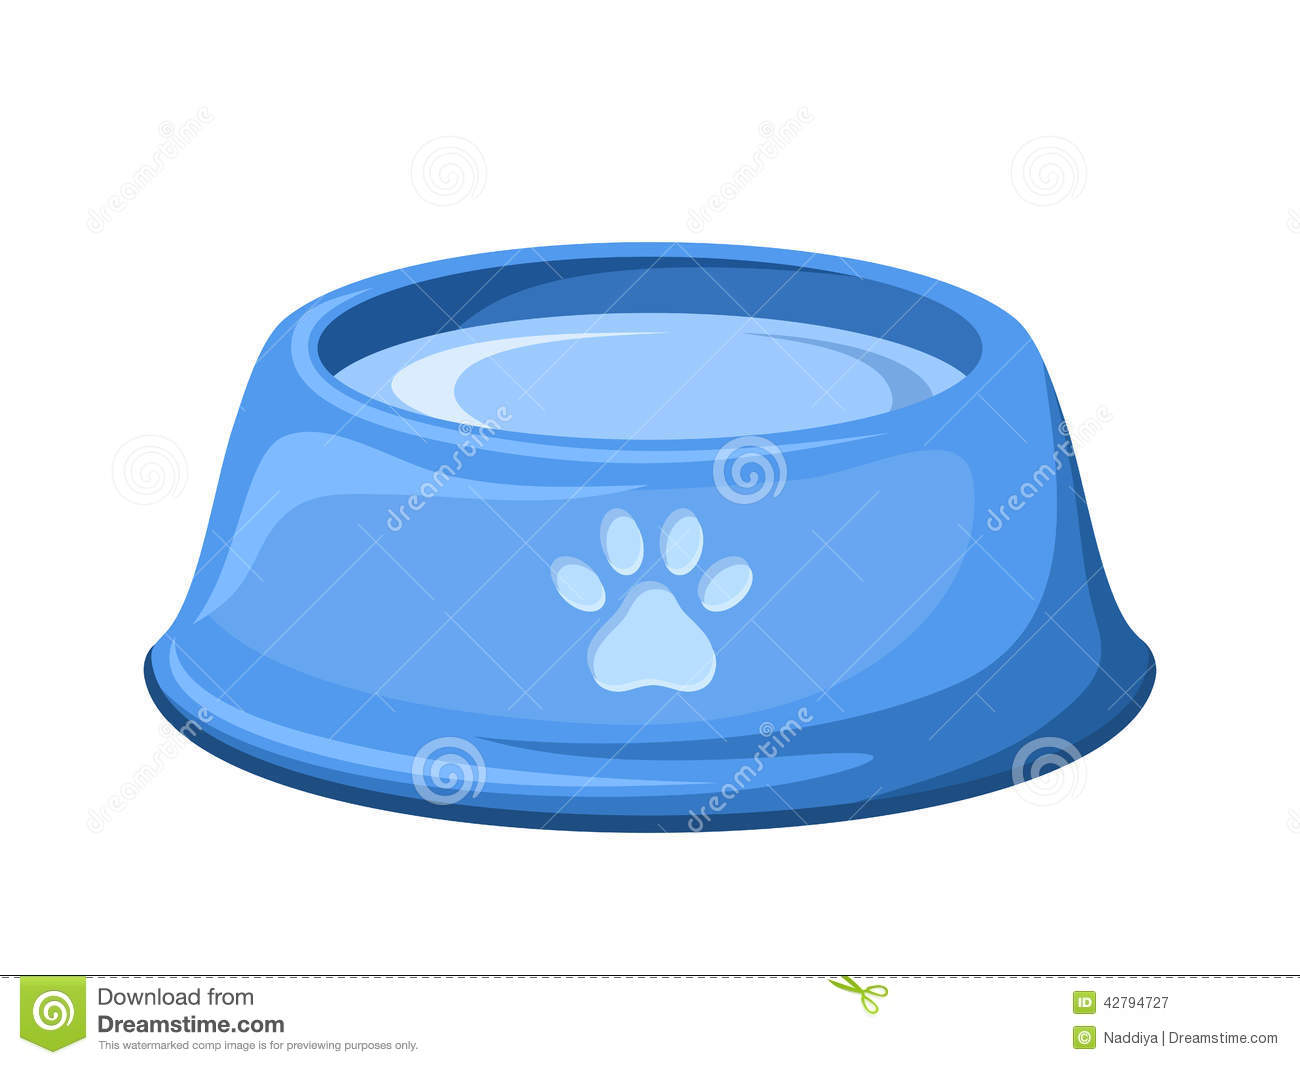 Give dog water clipart.